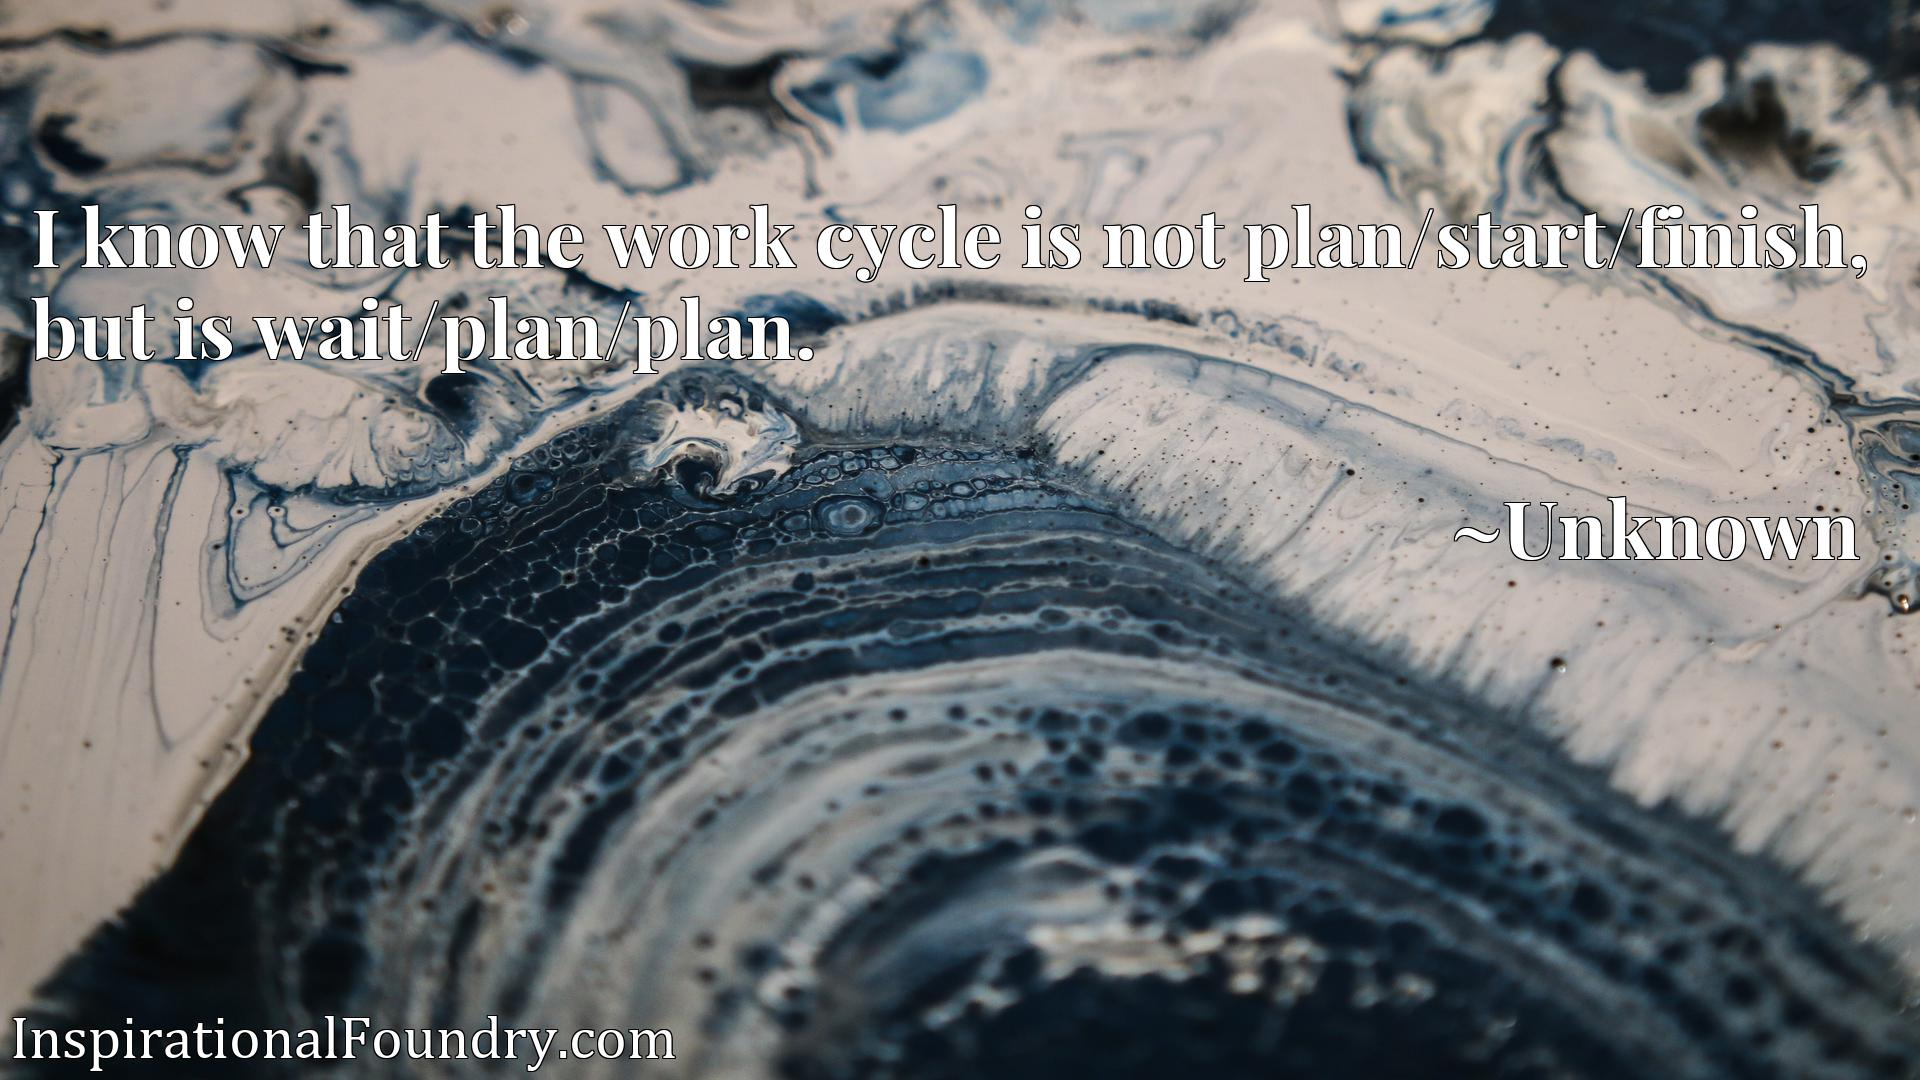 I know that the work cycle is not plan/start/finish, but is wait/plan/plan.